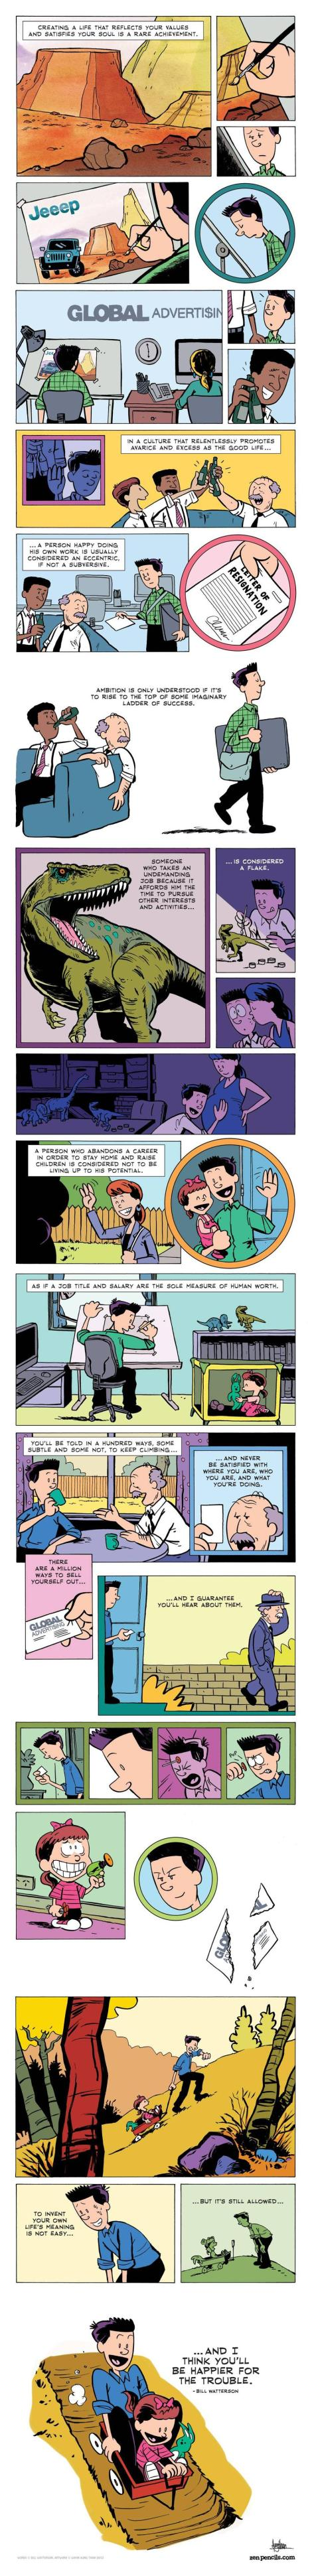 Creating a life by Bill Watterson